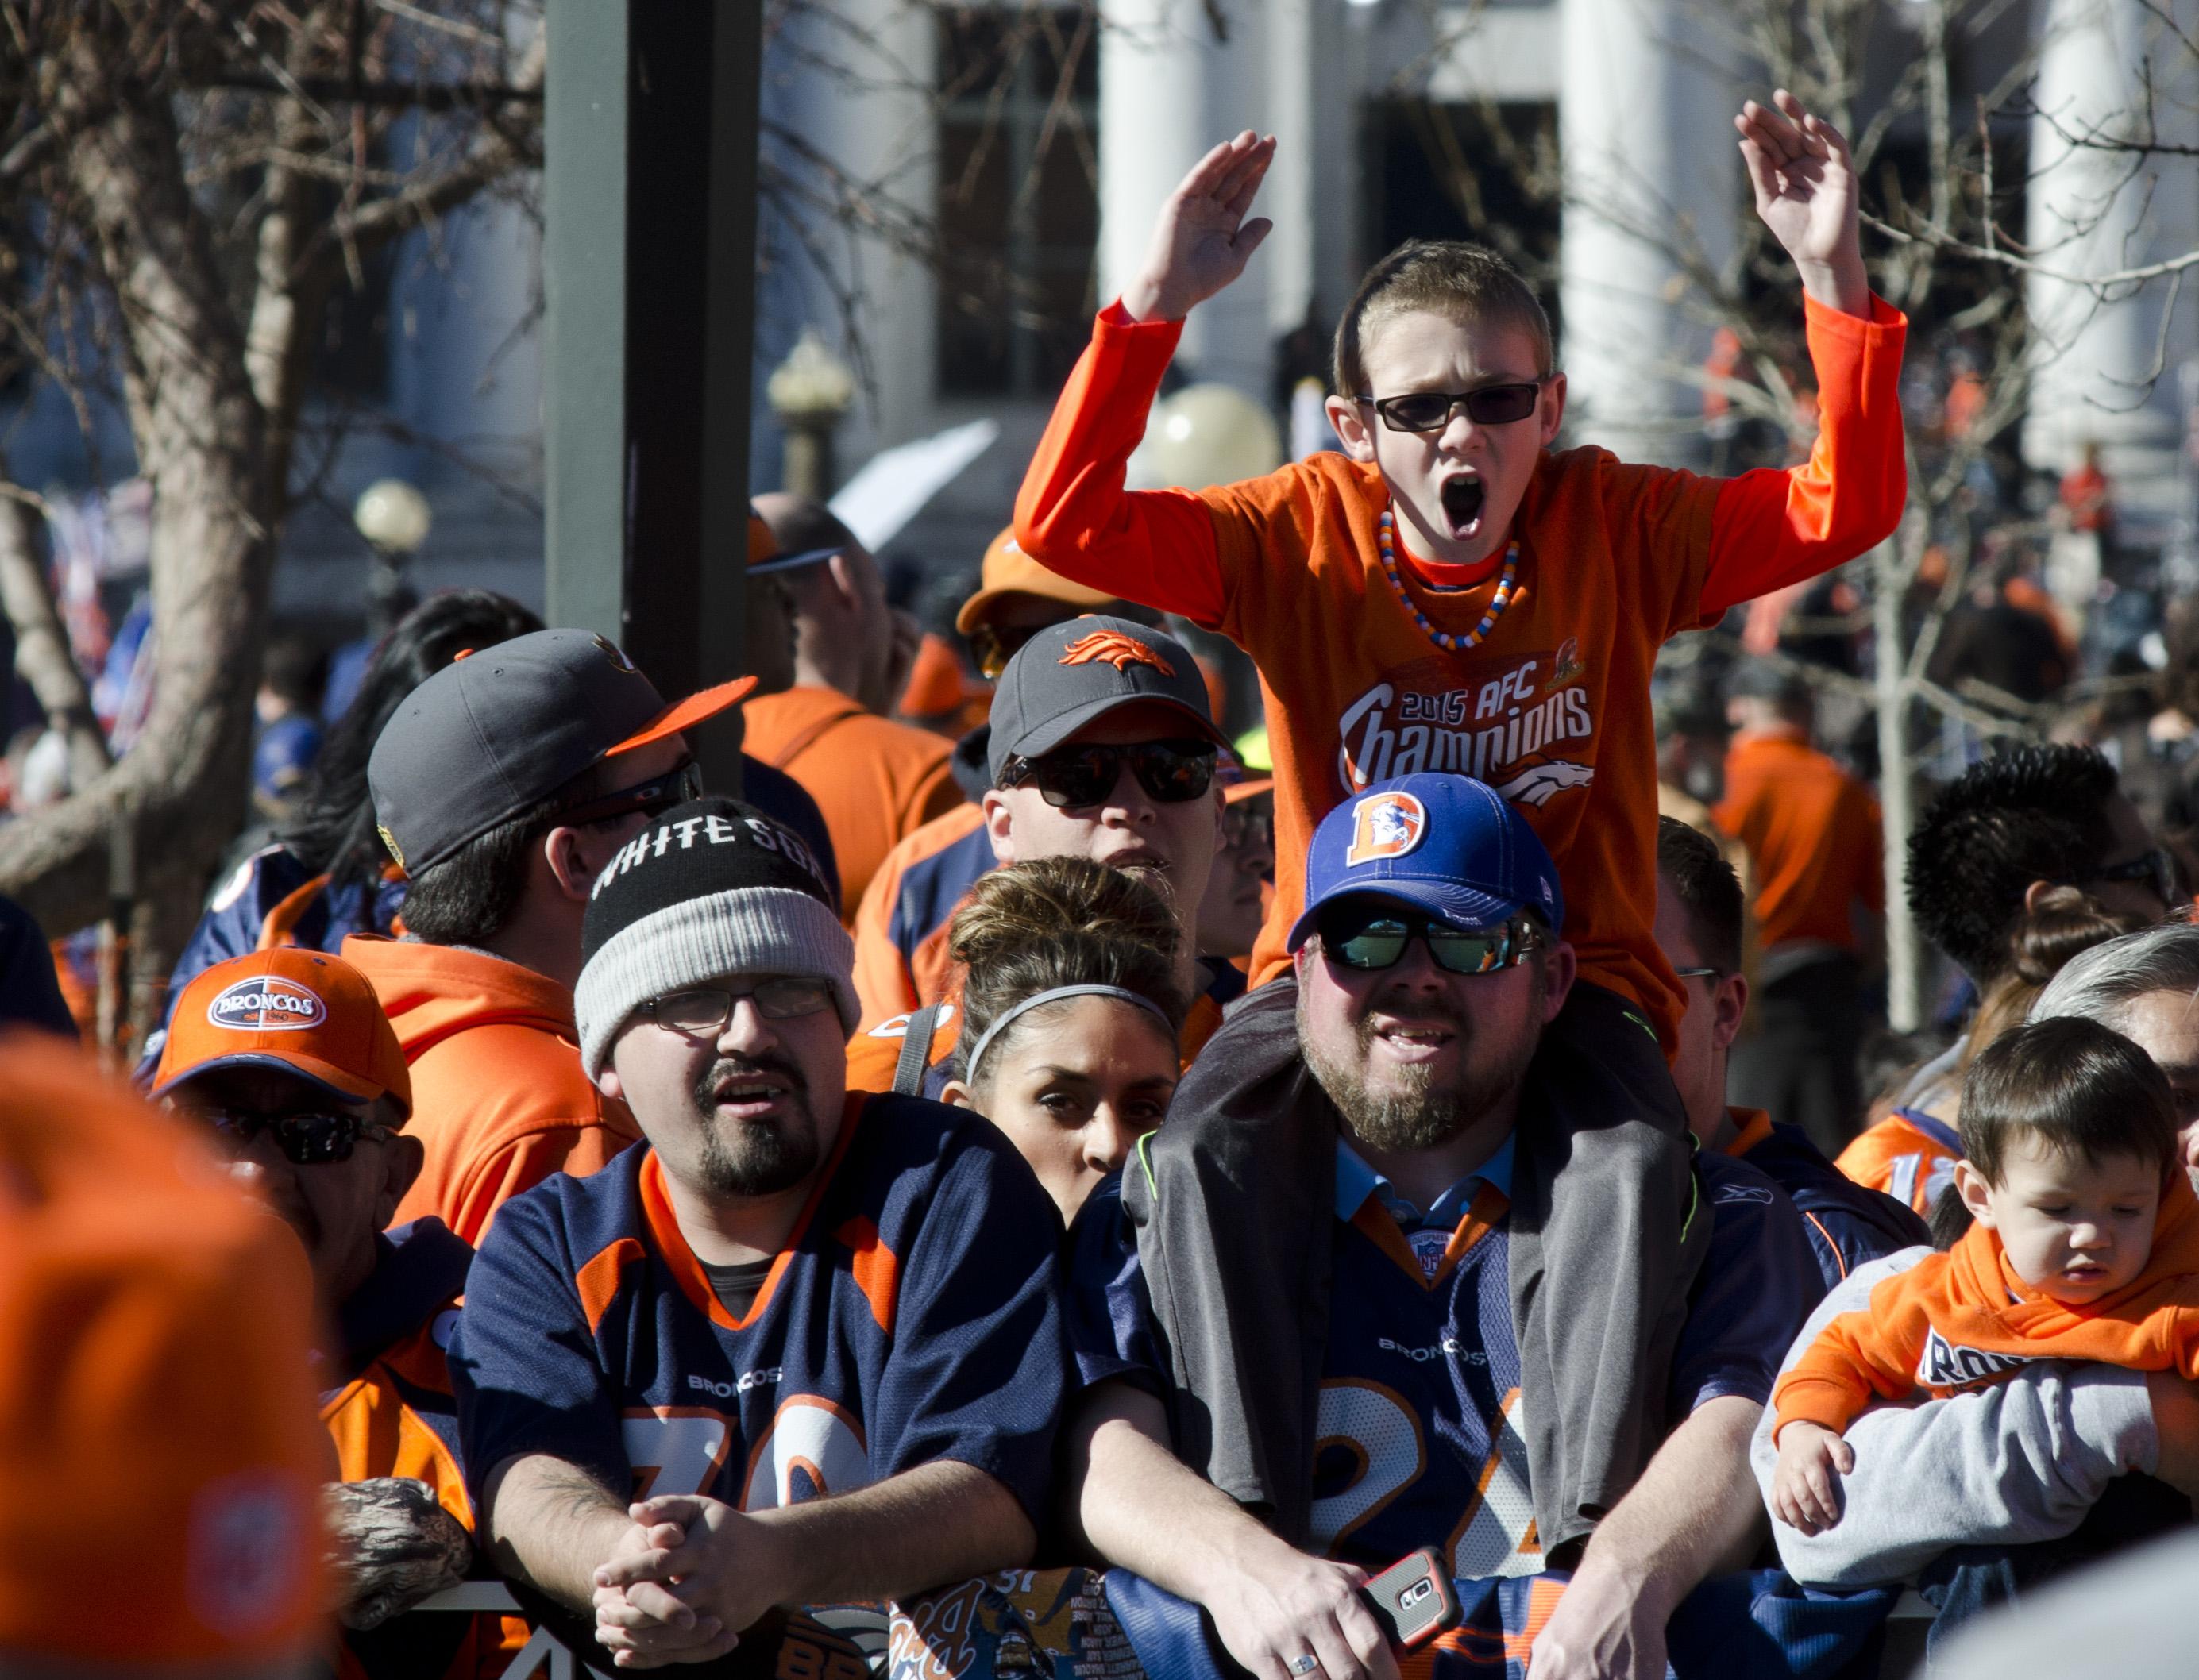 Photo: Broncos parade 3 | Young fan